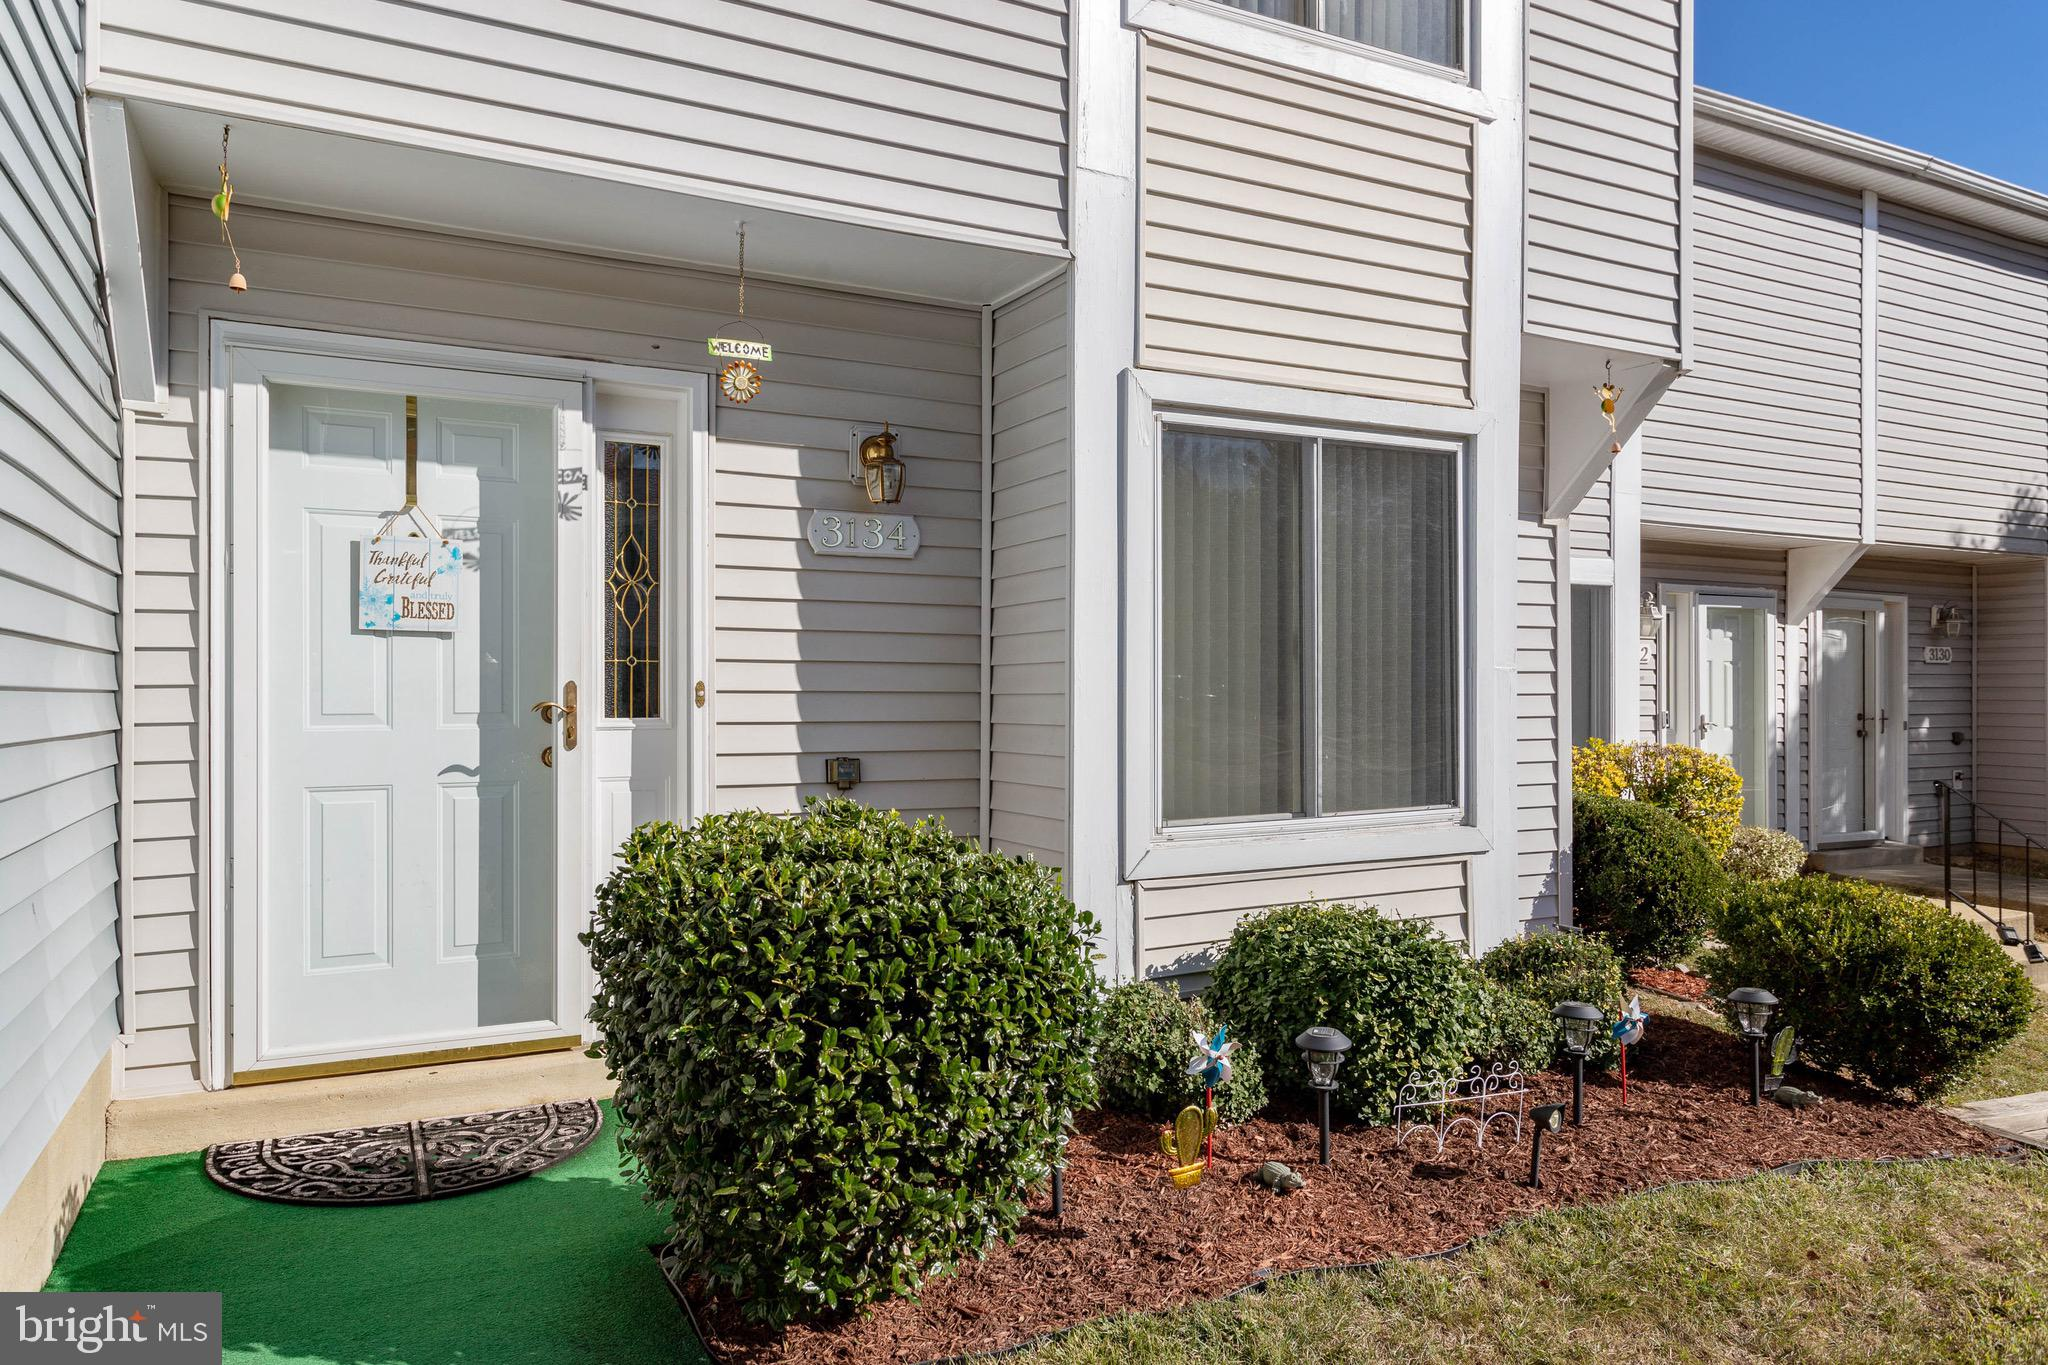 Your search is over! Charming 2 bedroom townhome located in the center of Saint Charles. Exceptional